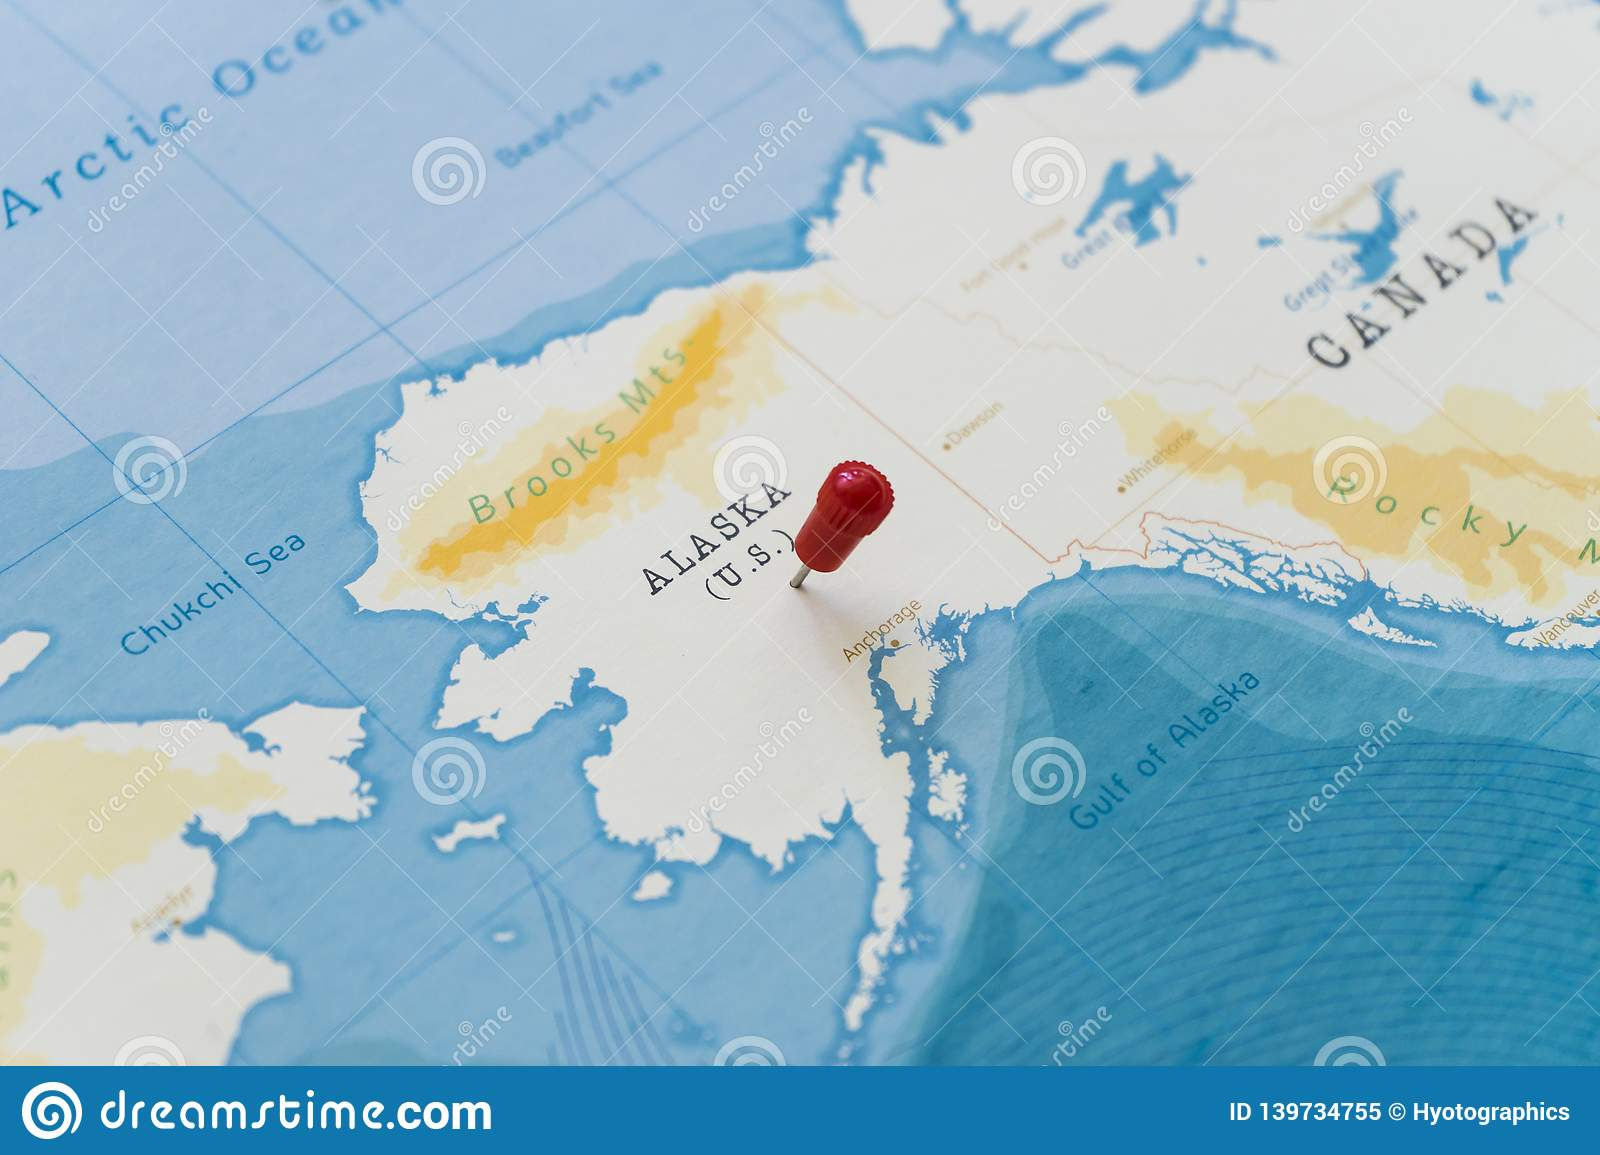 Picture of: A Pin On Alaska United States In The World Map Stock Image Image Of Location Global 139734755